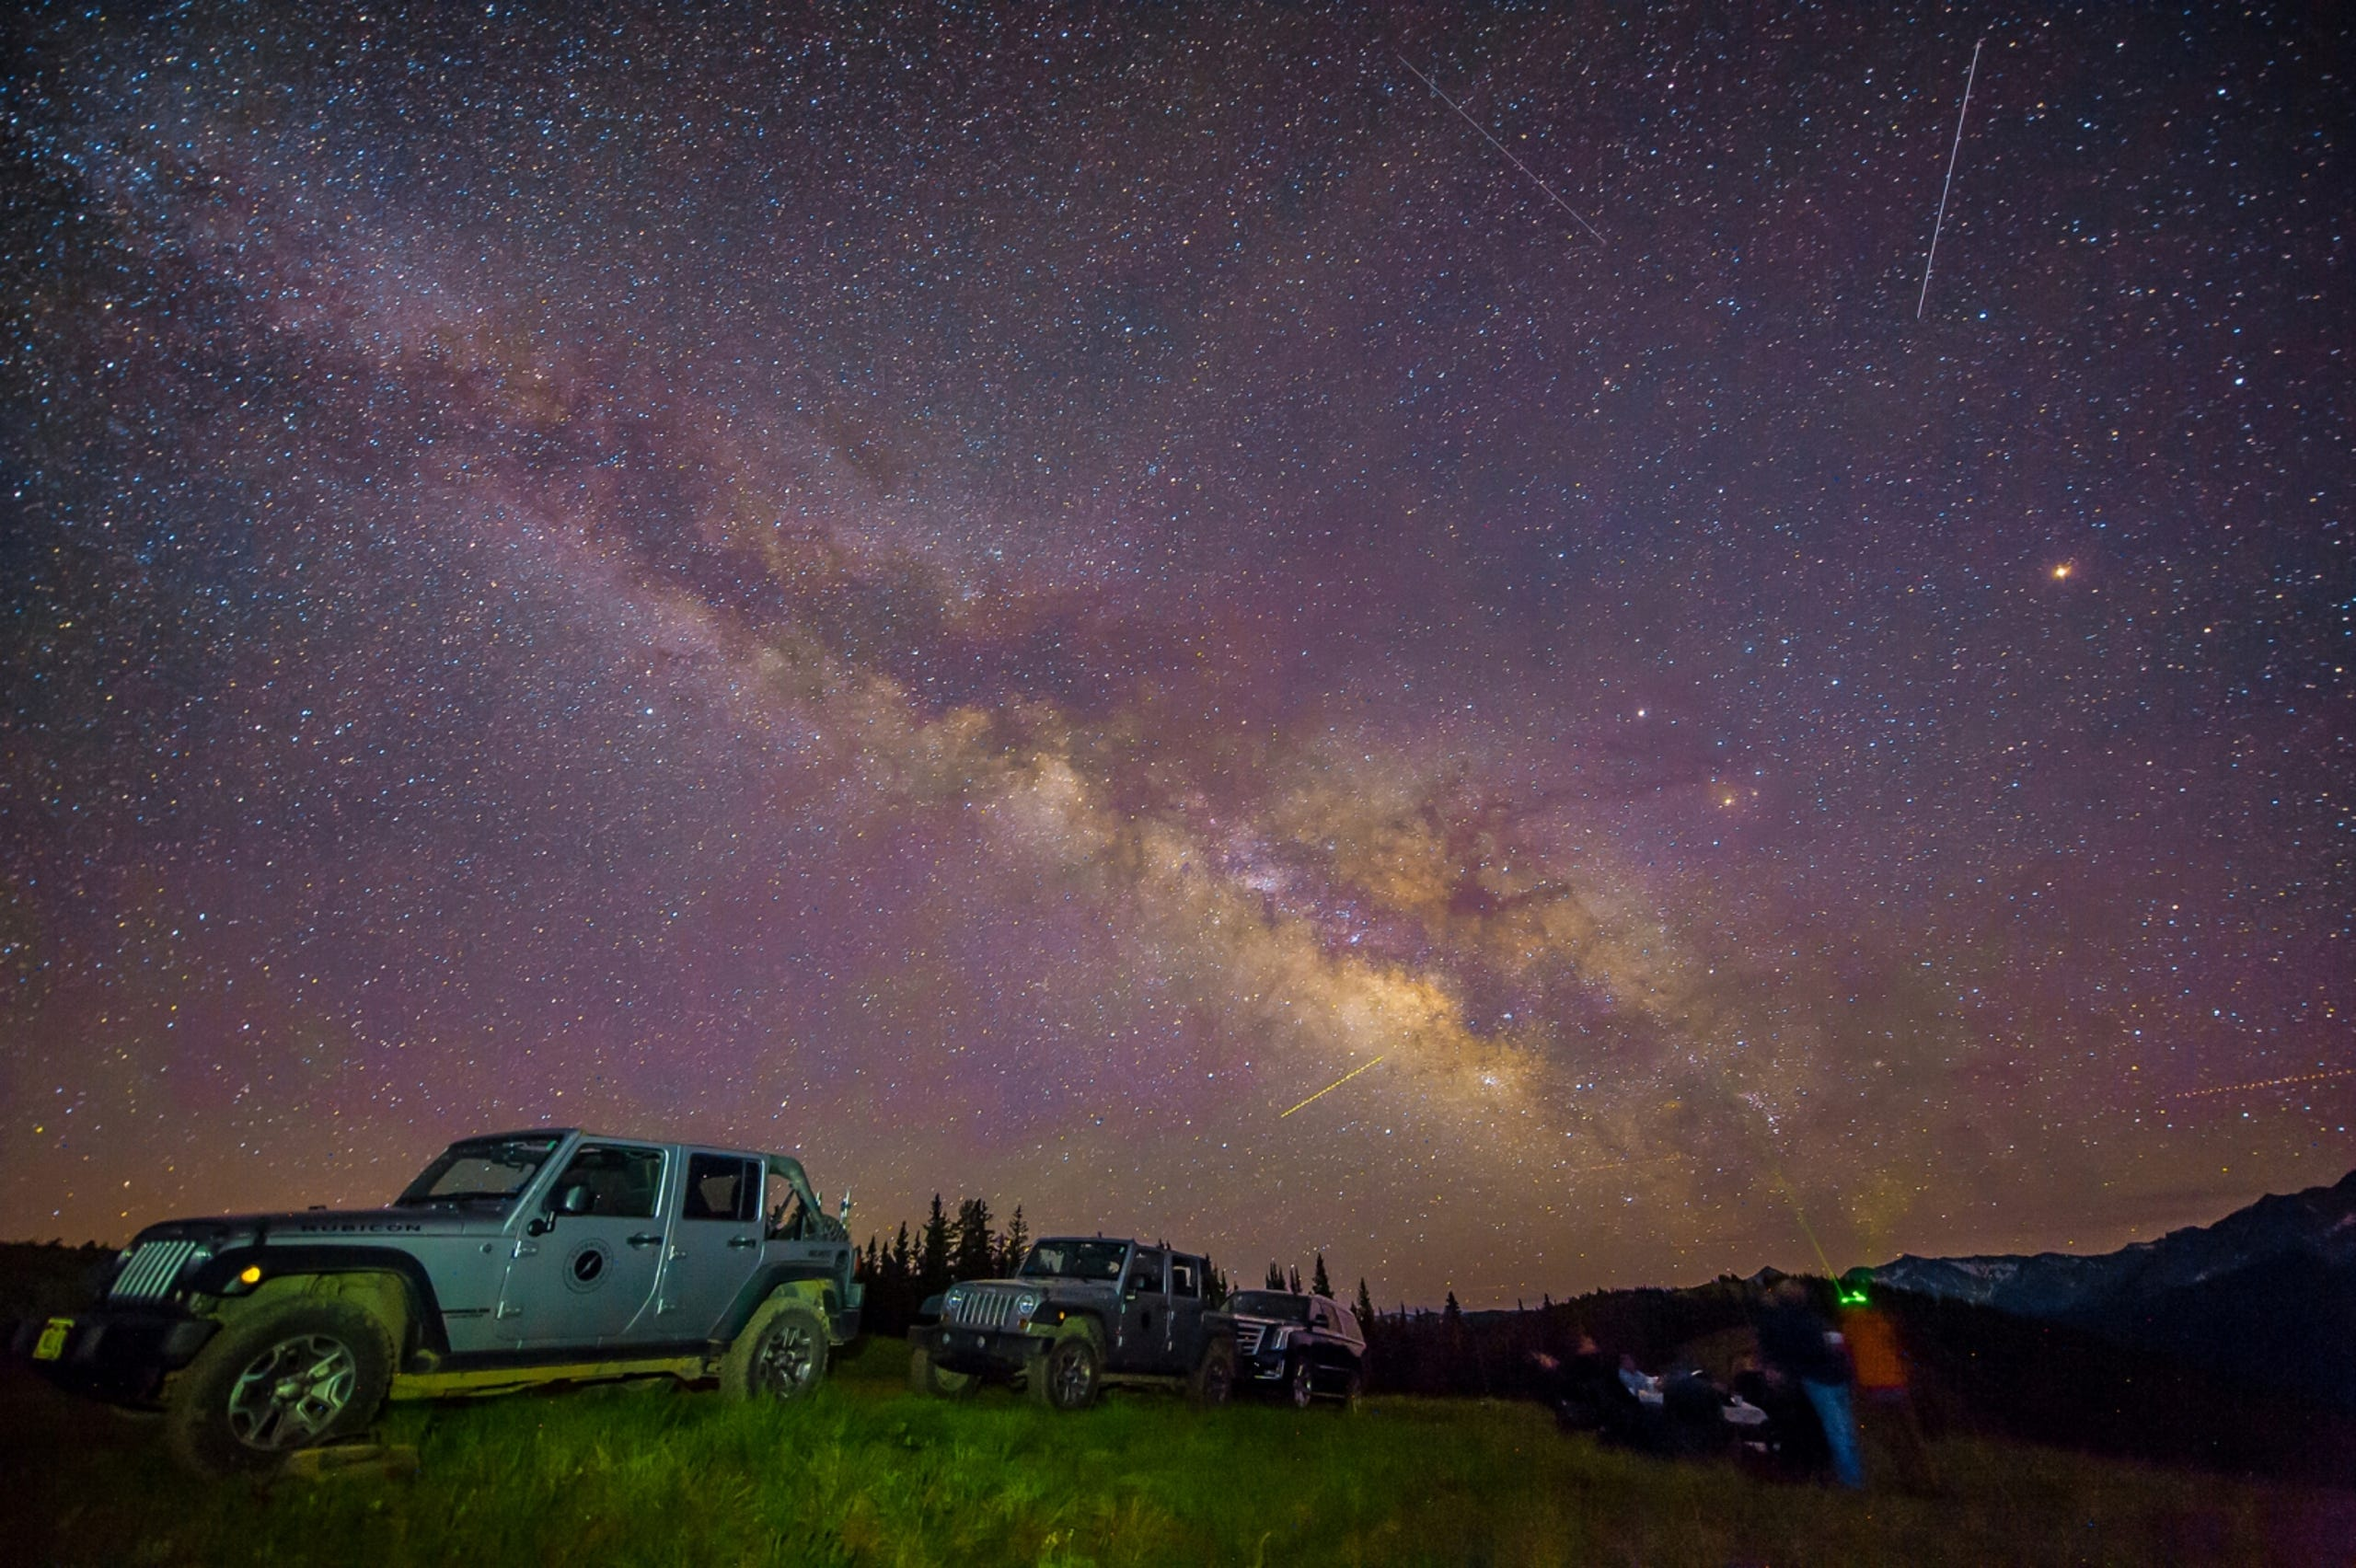 Aspen's Little Nell Hotel offers stargazing tours to see the heavens over the Rockies.